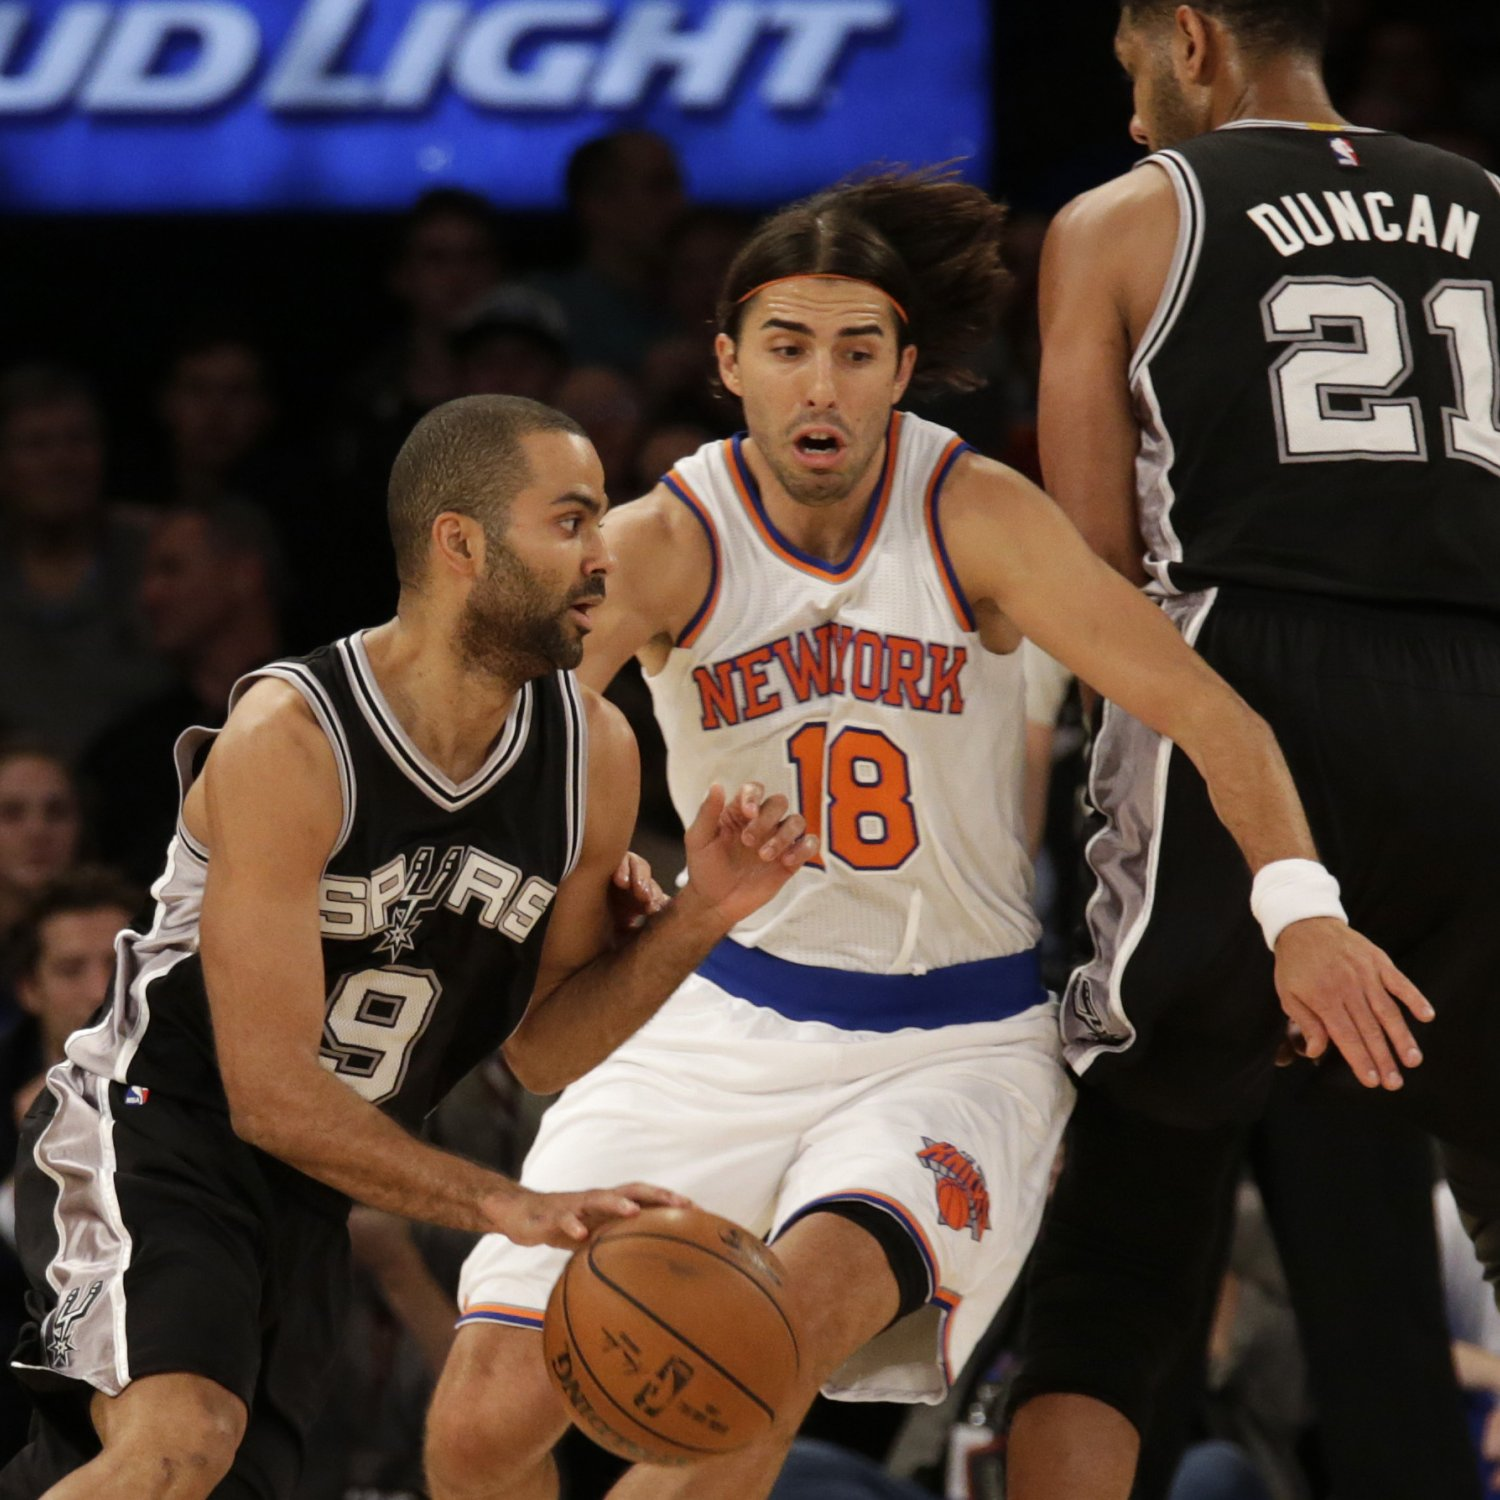 Warriors Timberwolves Full Game Highlights: Spurs Vs. Knicks: Score, Video Highlights And Recap From